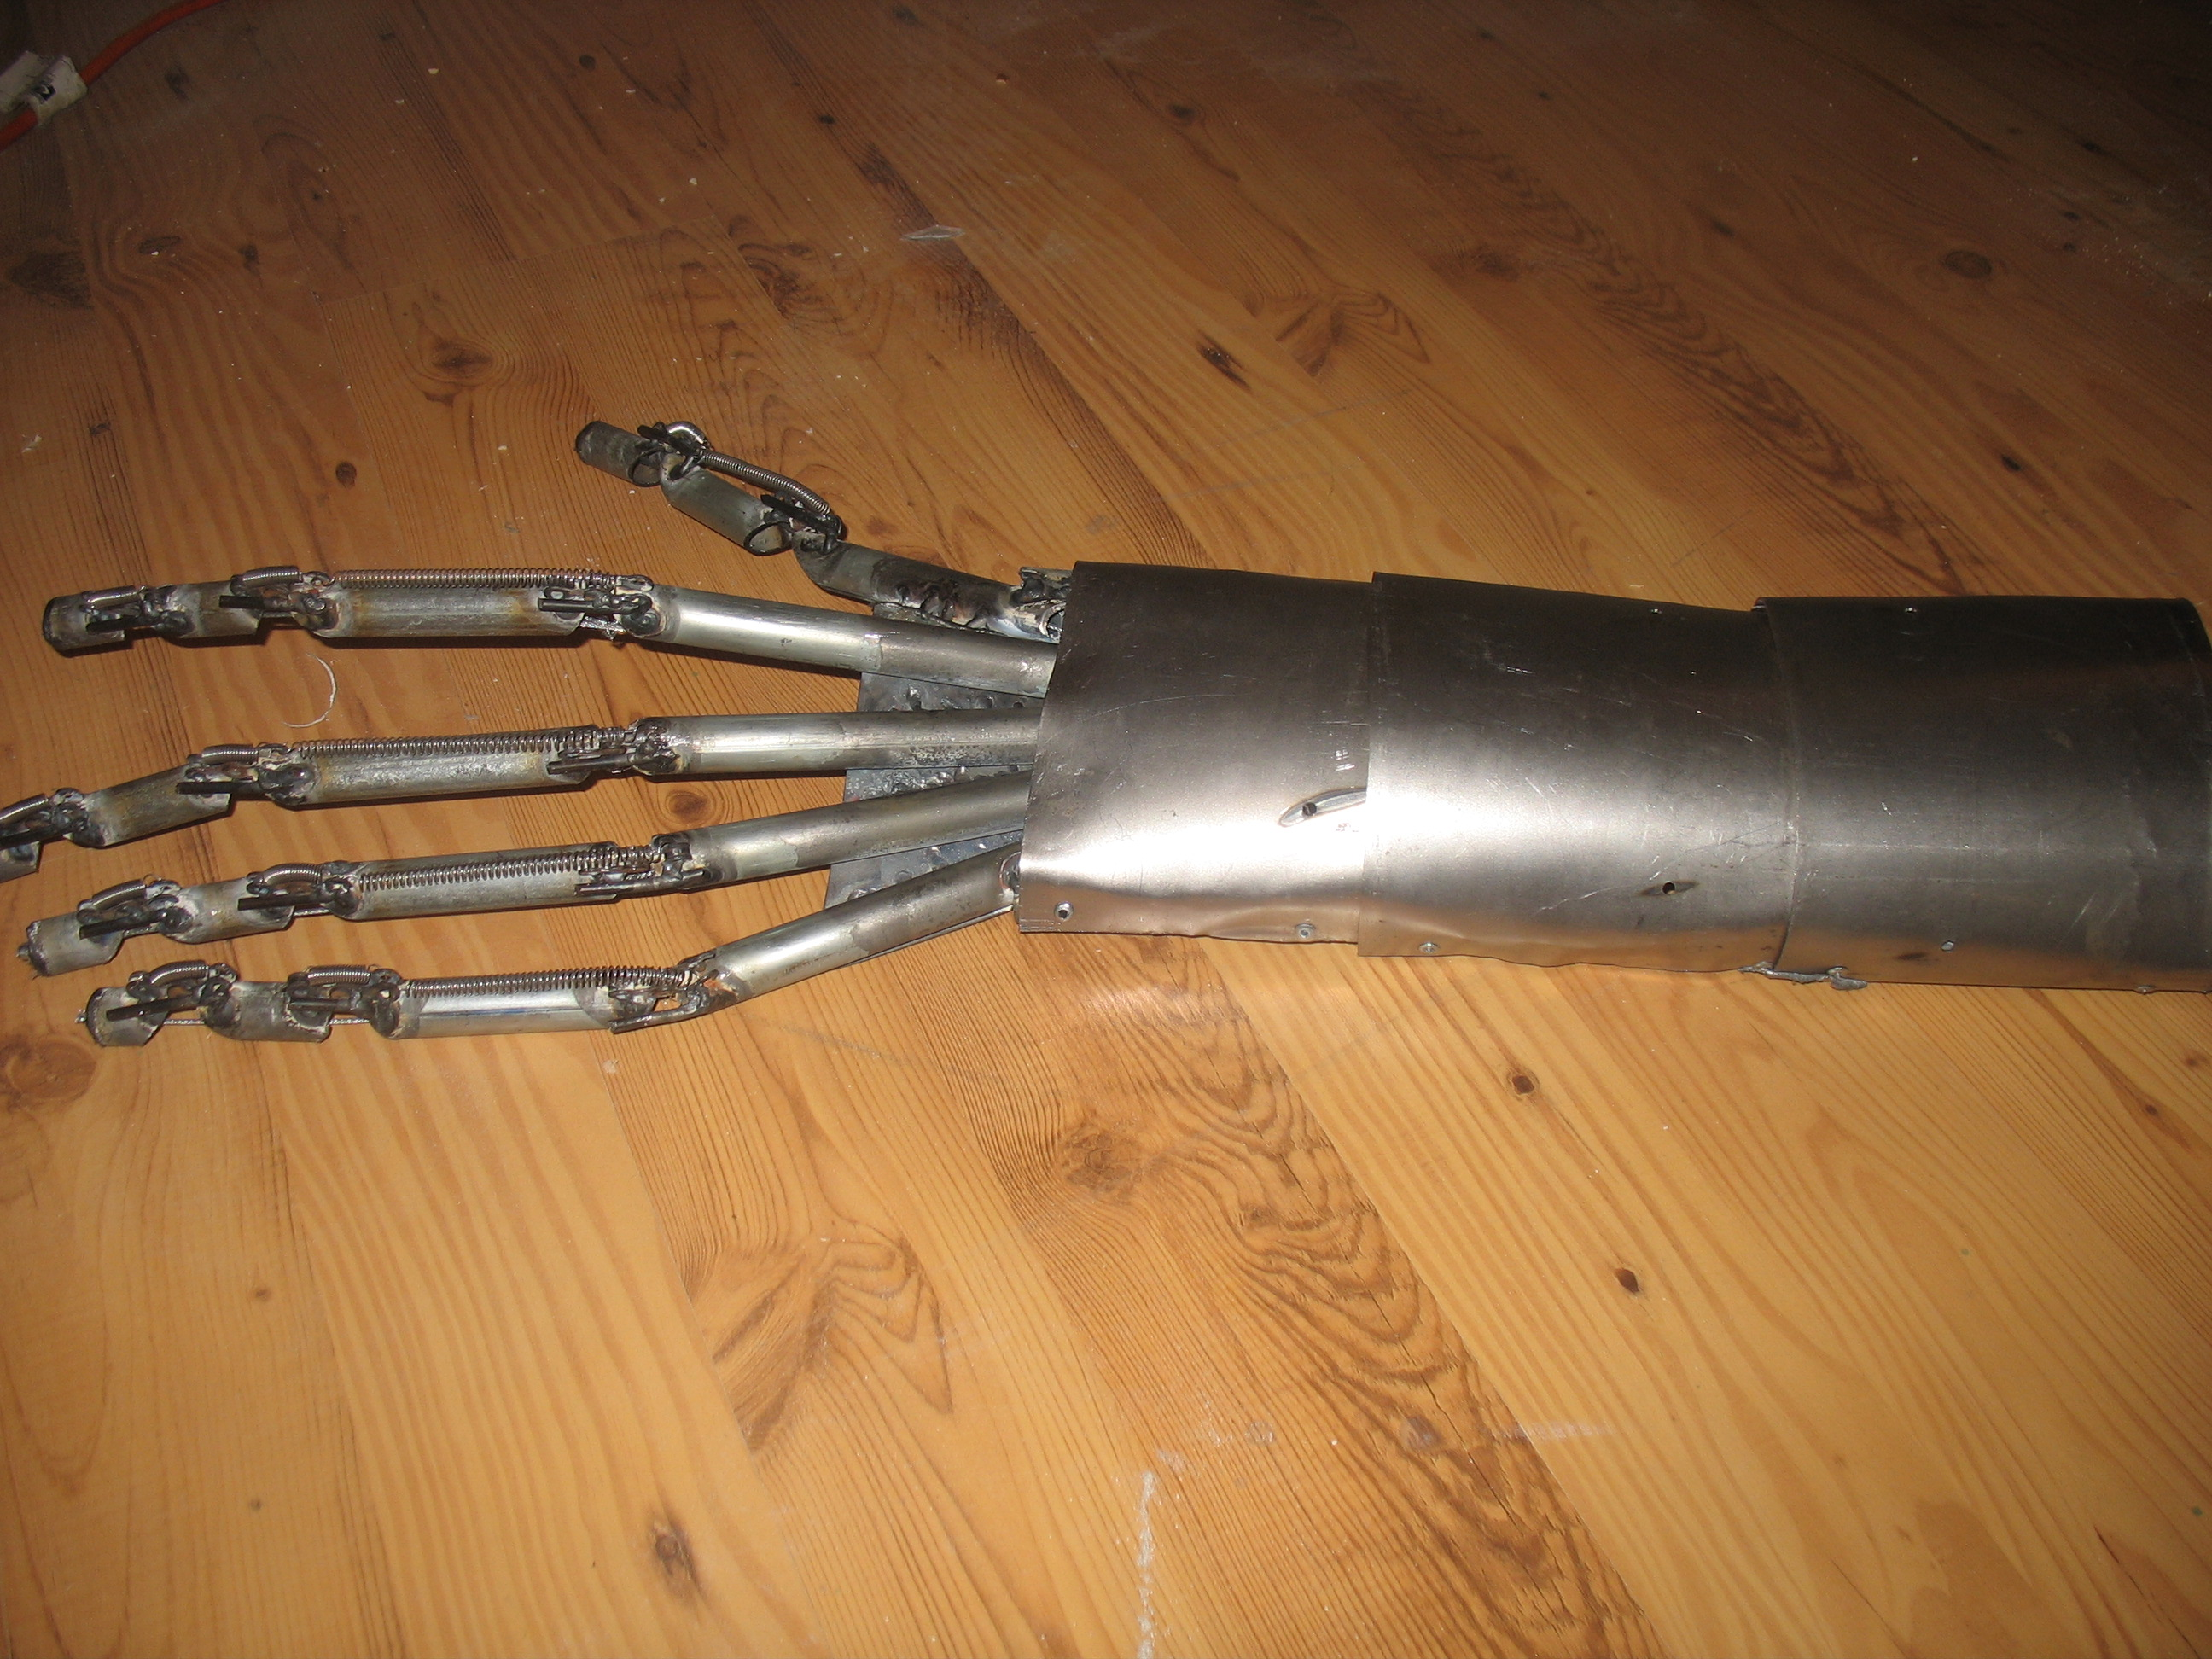 Giant Metal Animatronic Cyborg Hand of DOOM!